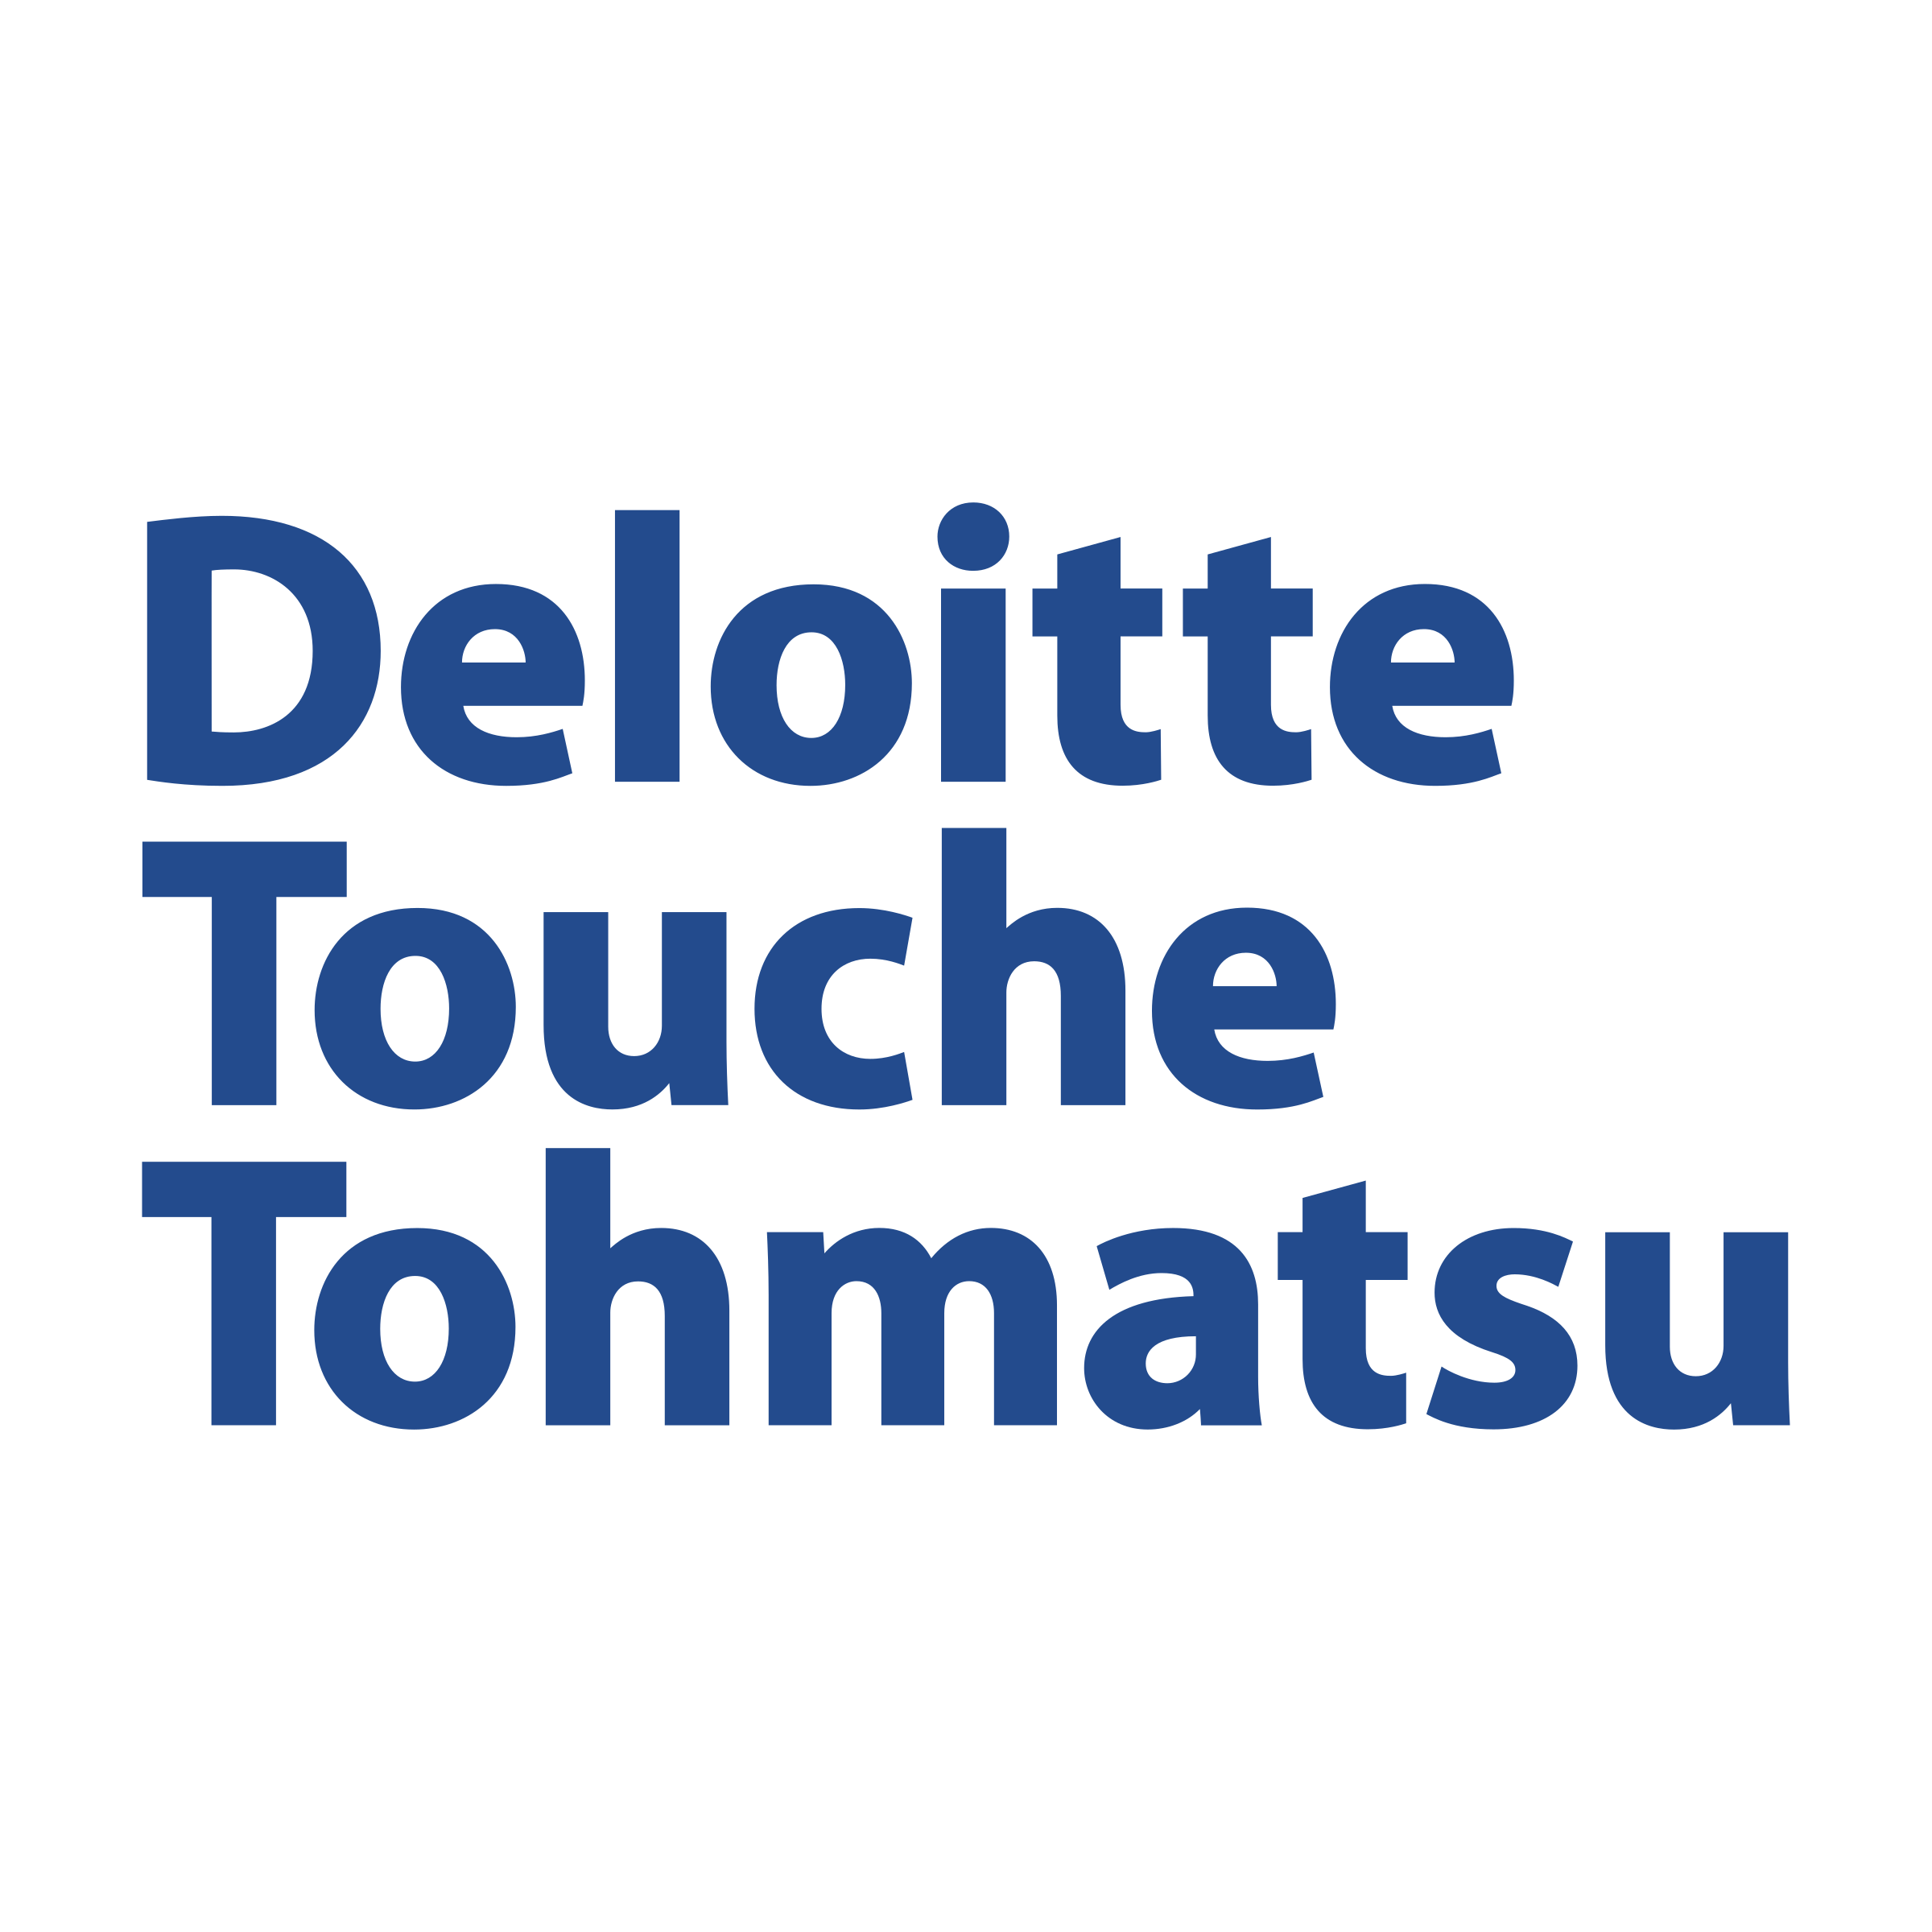 Deloitte Logo White - bcee – Push The Print Sàrl